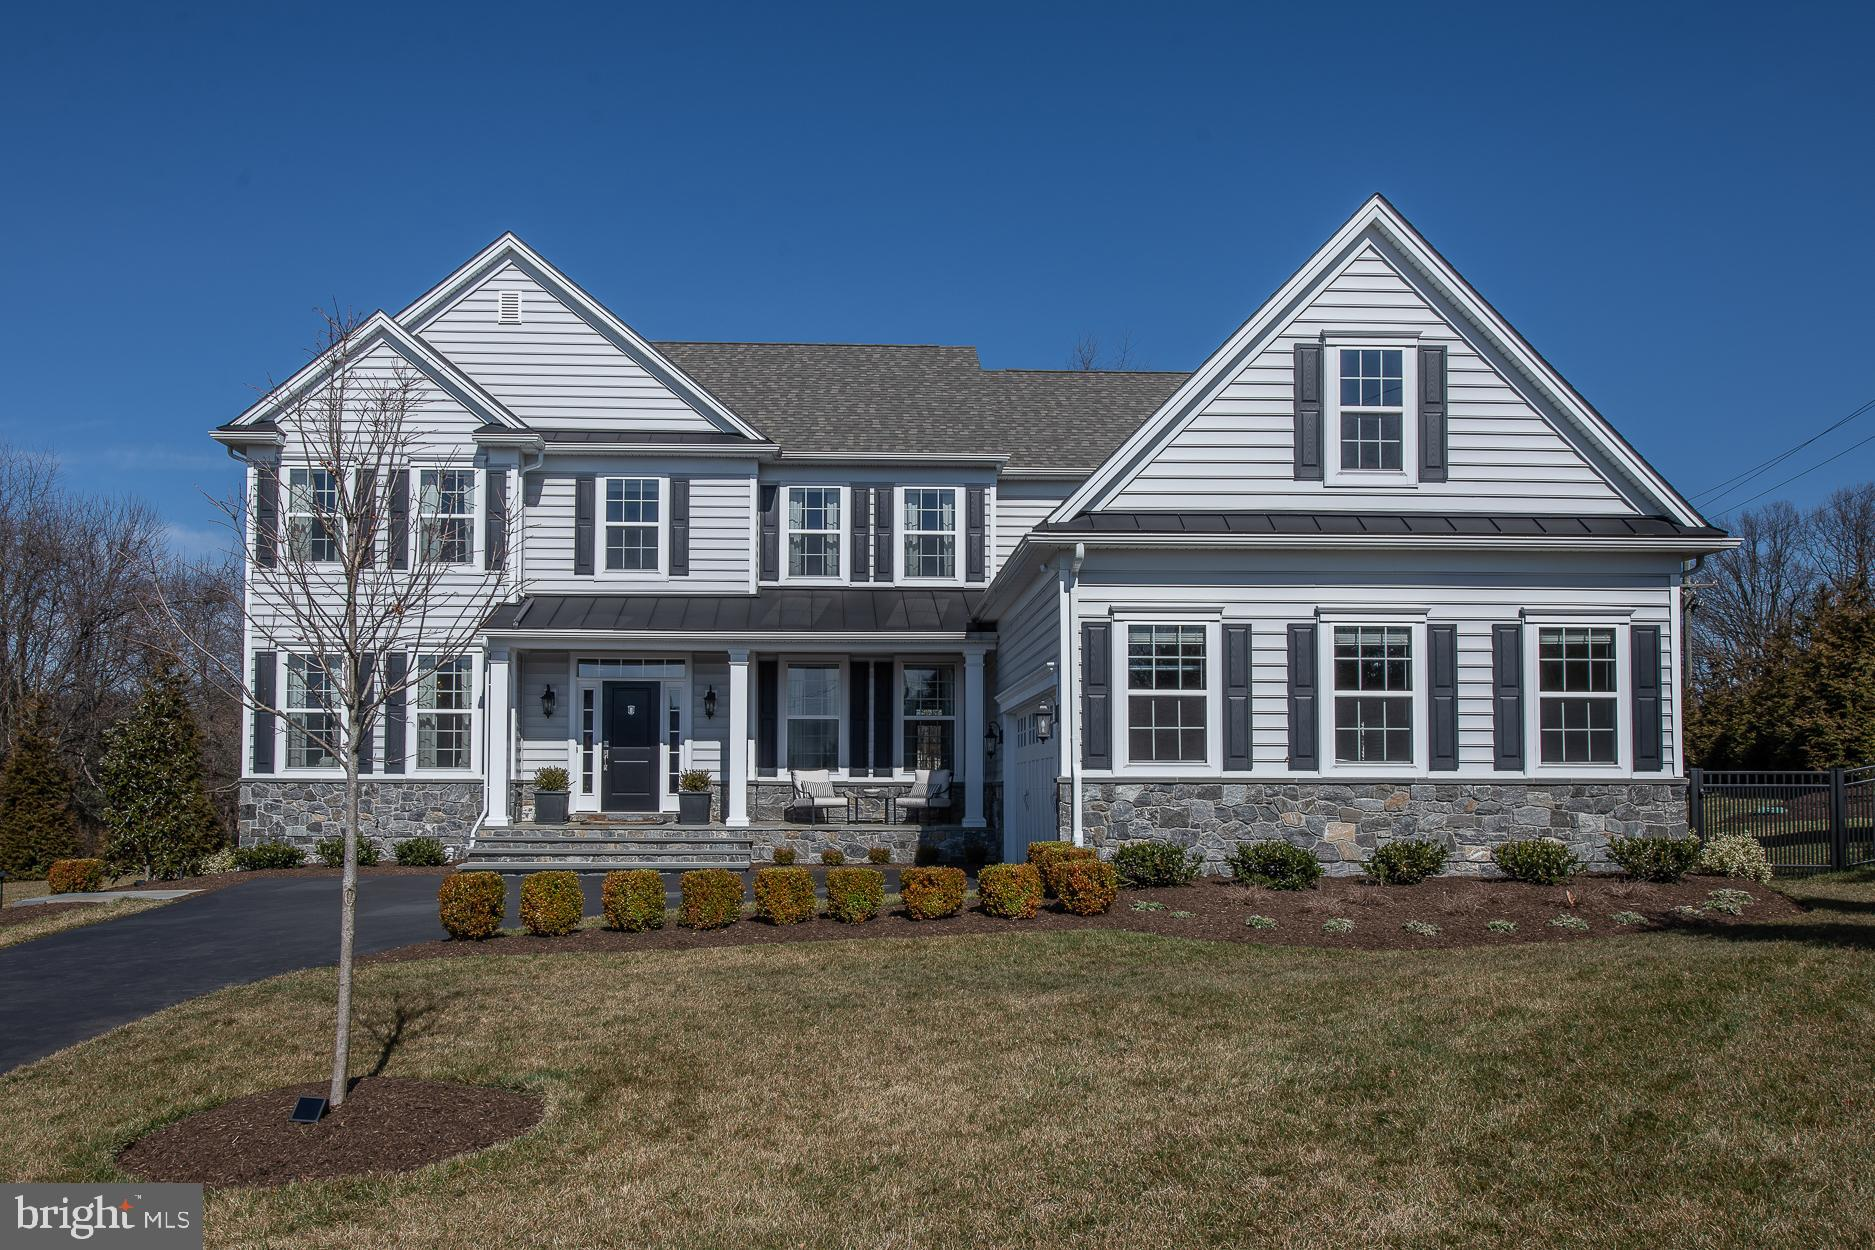 2 GALLOP LANE, WEST CHESTER, PA 19380